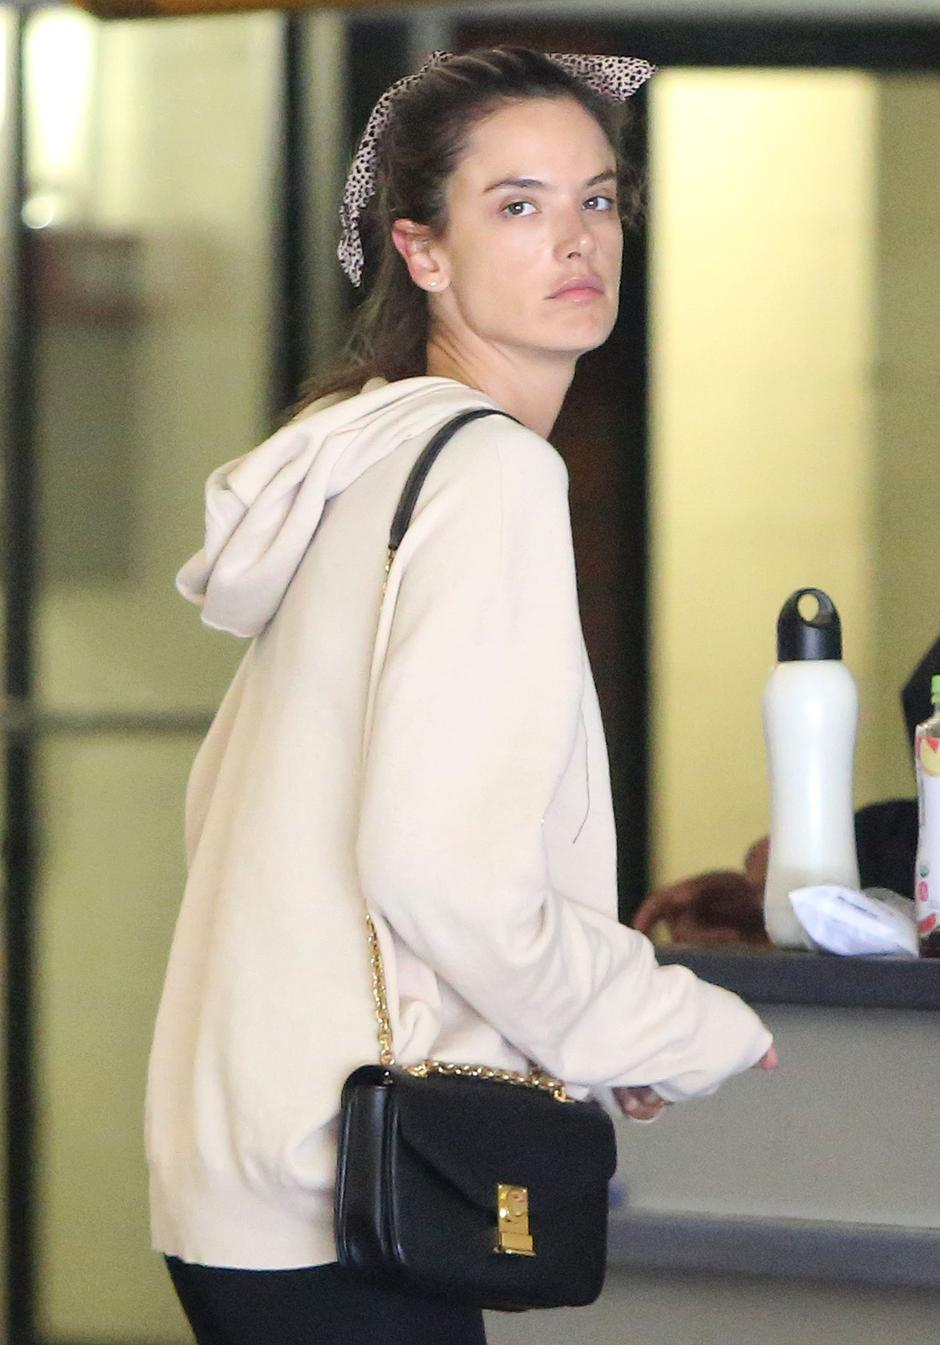 Alessandra Ambrosio out and about in Santa Monica | Autor: Profimedia